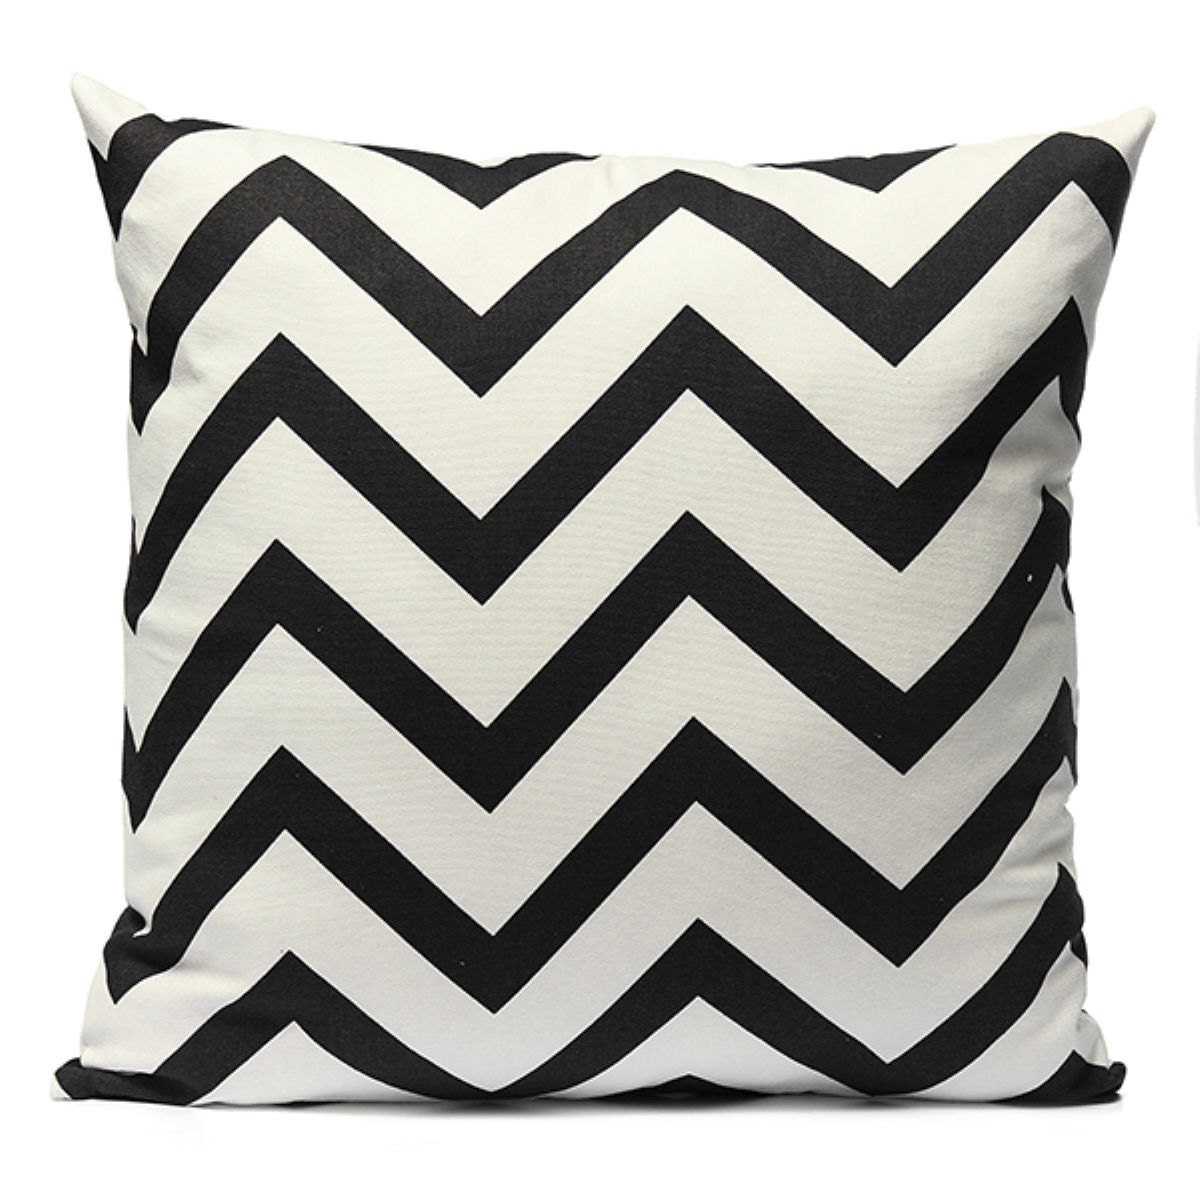 Chevron Black and White Throw Pillow Cover Sofa Bed Home